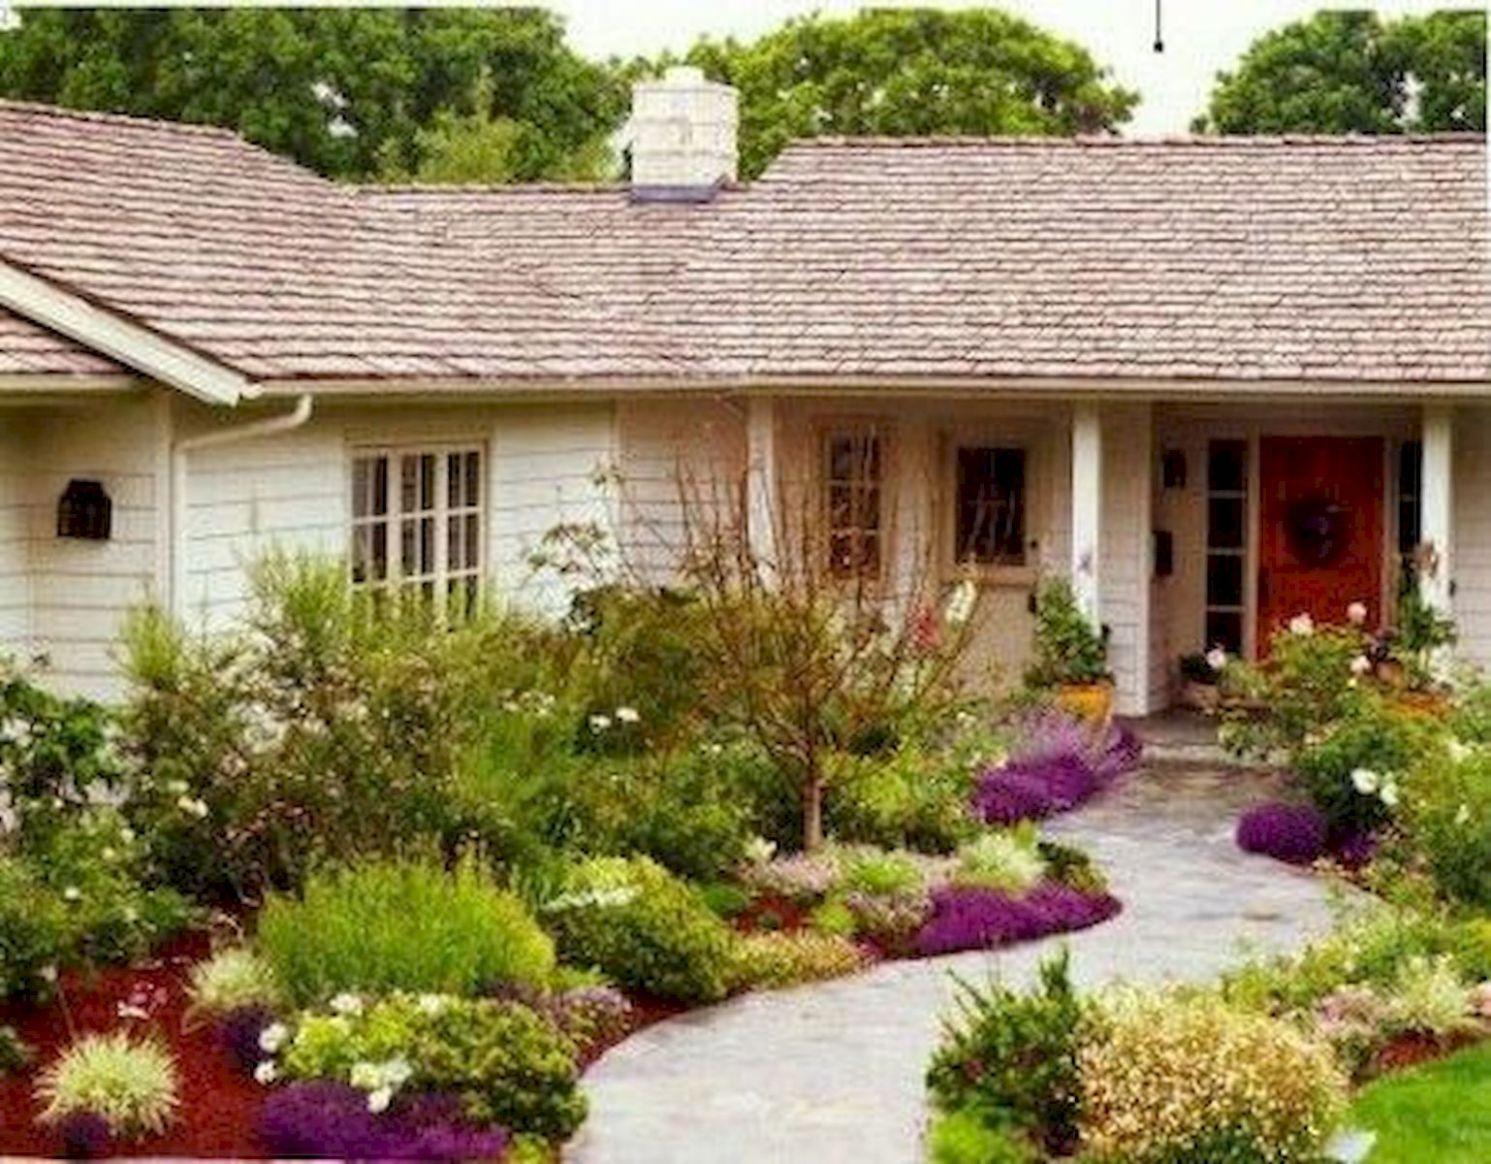 10 Beauty Front Yard Garden Landscaping Design Ideas – 10DECOR - garden ideas for january